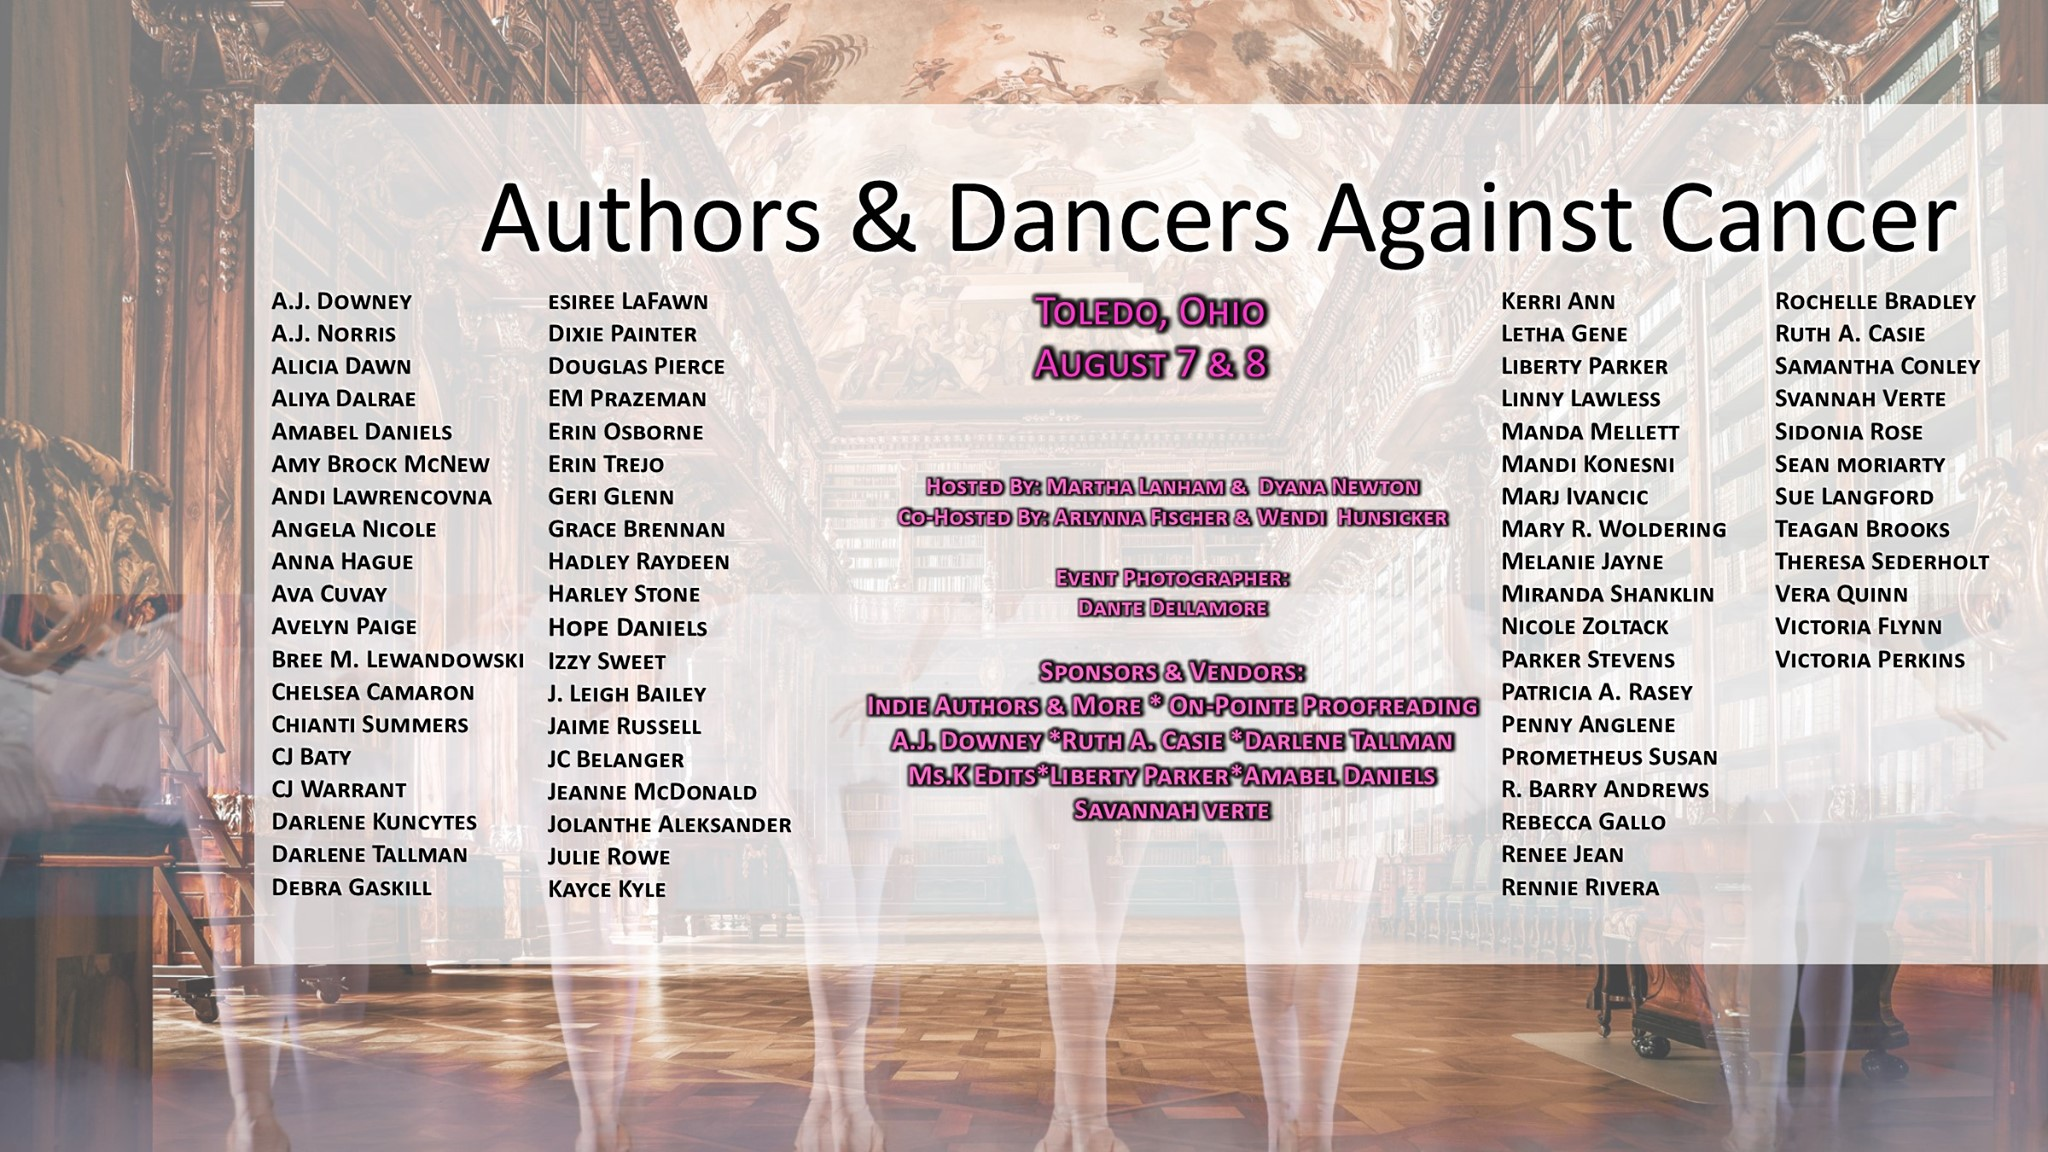 Authors for Authors & Dancers